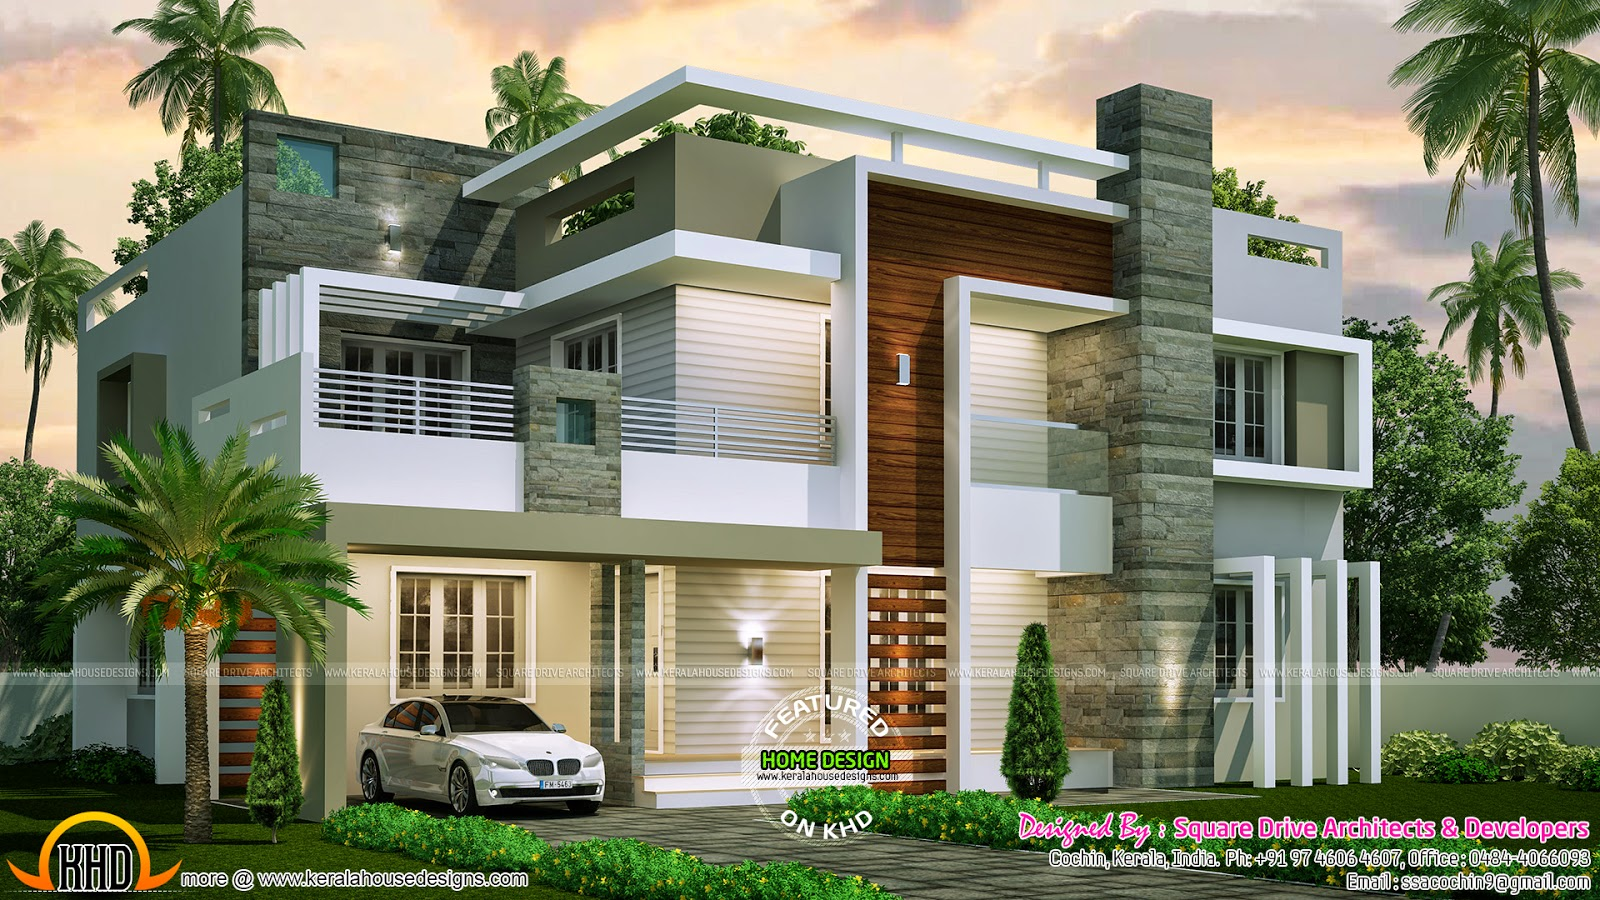 4 bedroom contemporary home design kerala home design for Pictures of house designs and floor plans